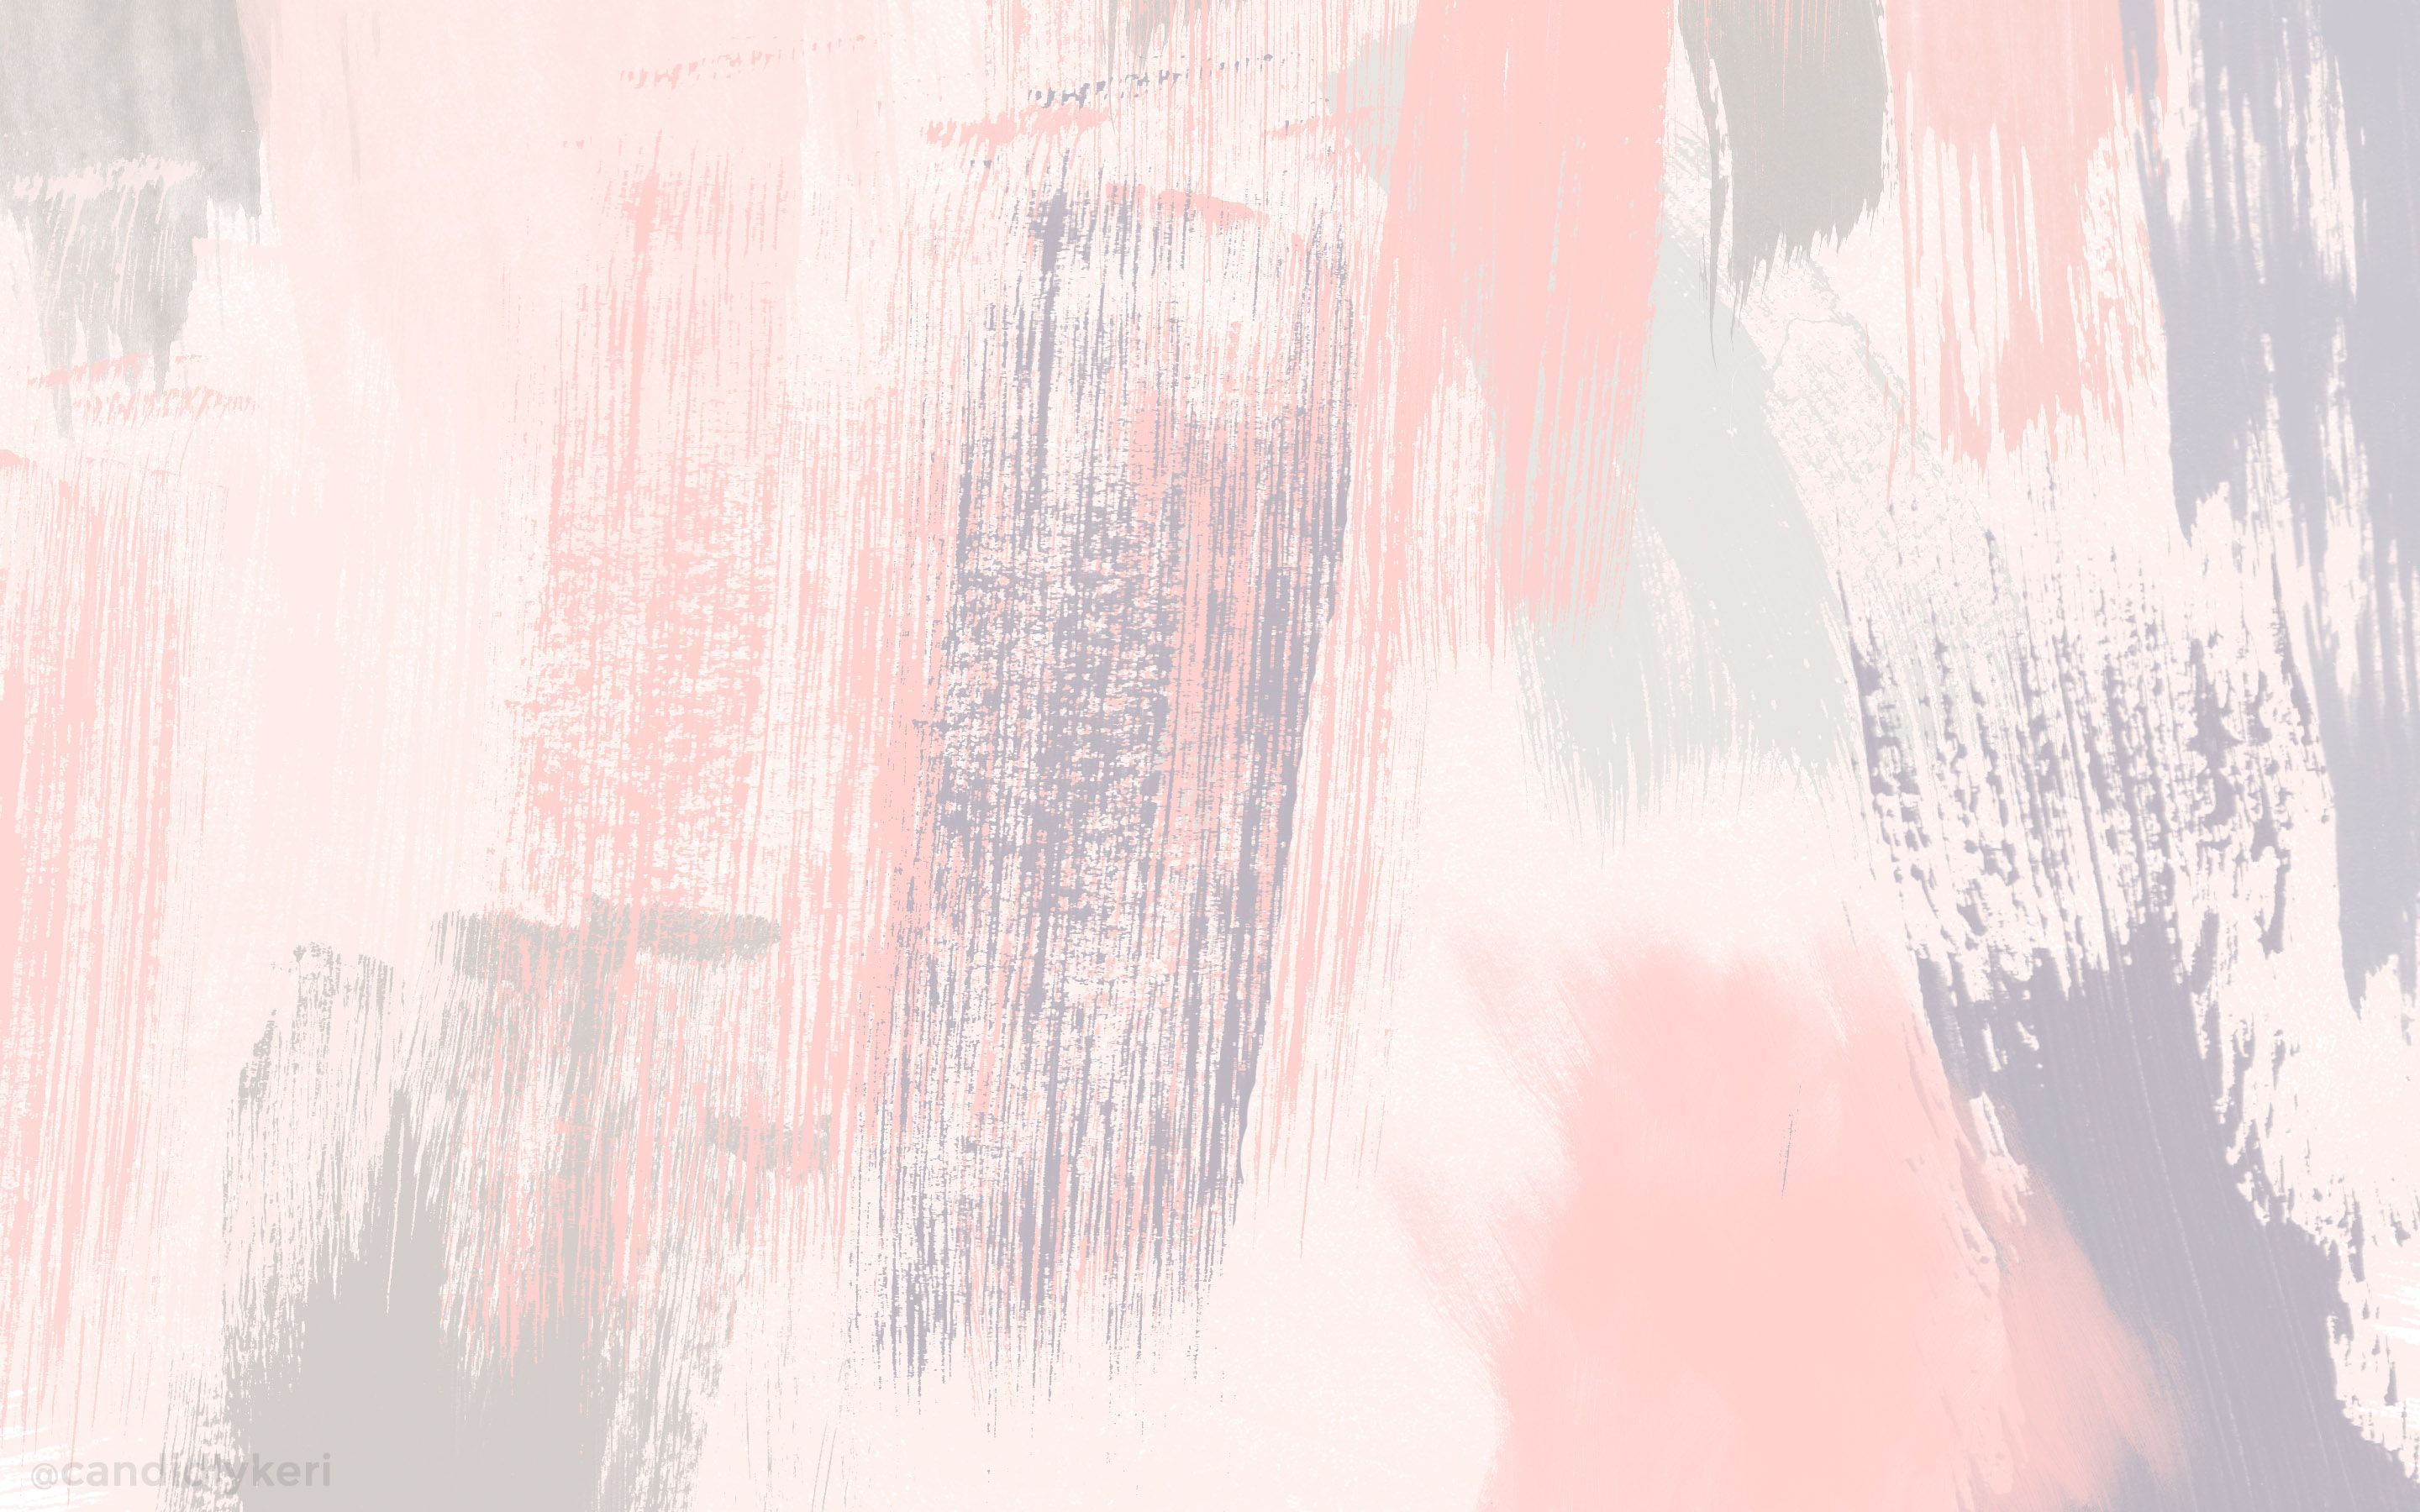 Pastels Aesthetic Computer Wallpapers - Top Free Pastels ...